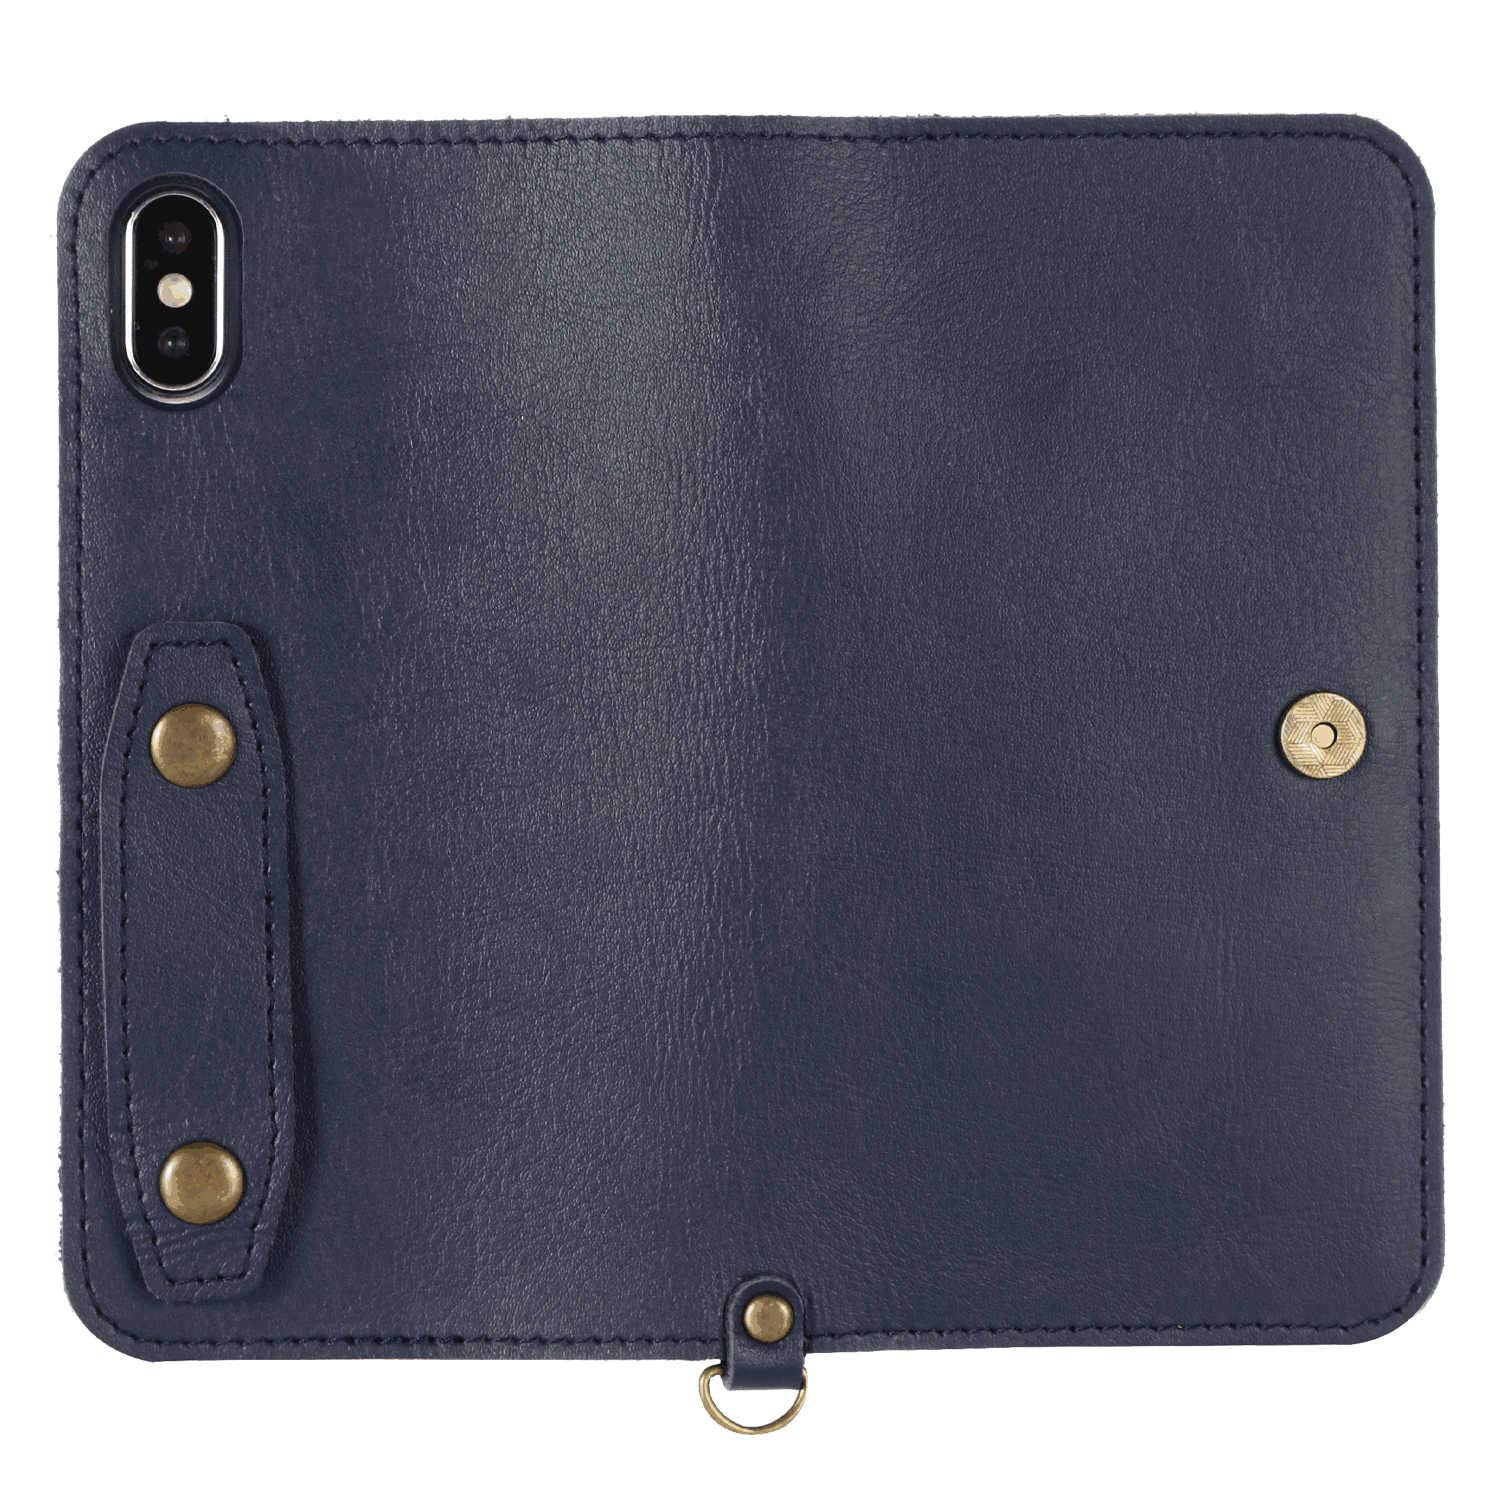 iPhone Xs Max Flip Case Cover for Leather Card Holders Cell Phone Cover Extra-Durable Business Kickstand Flip Cover